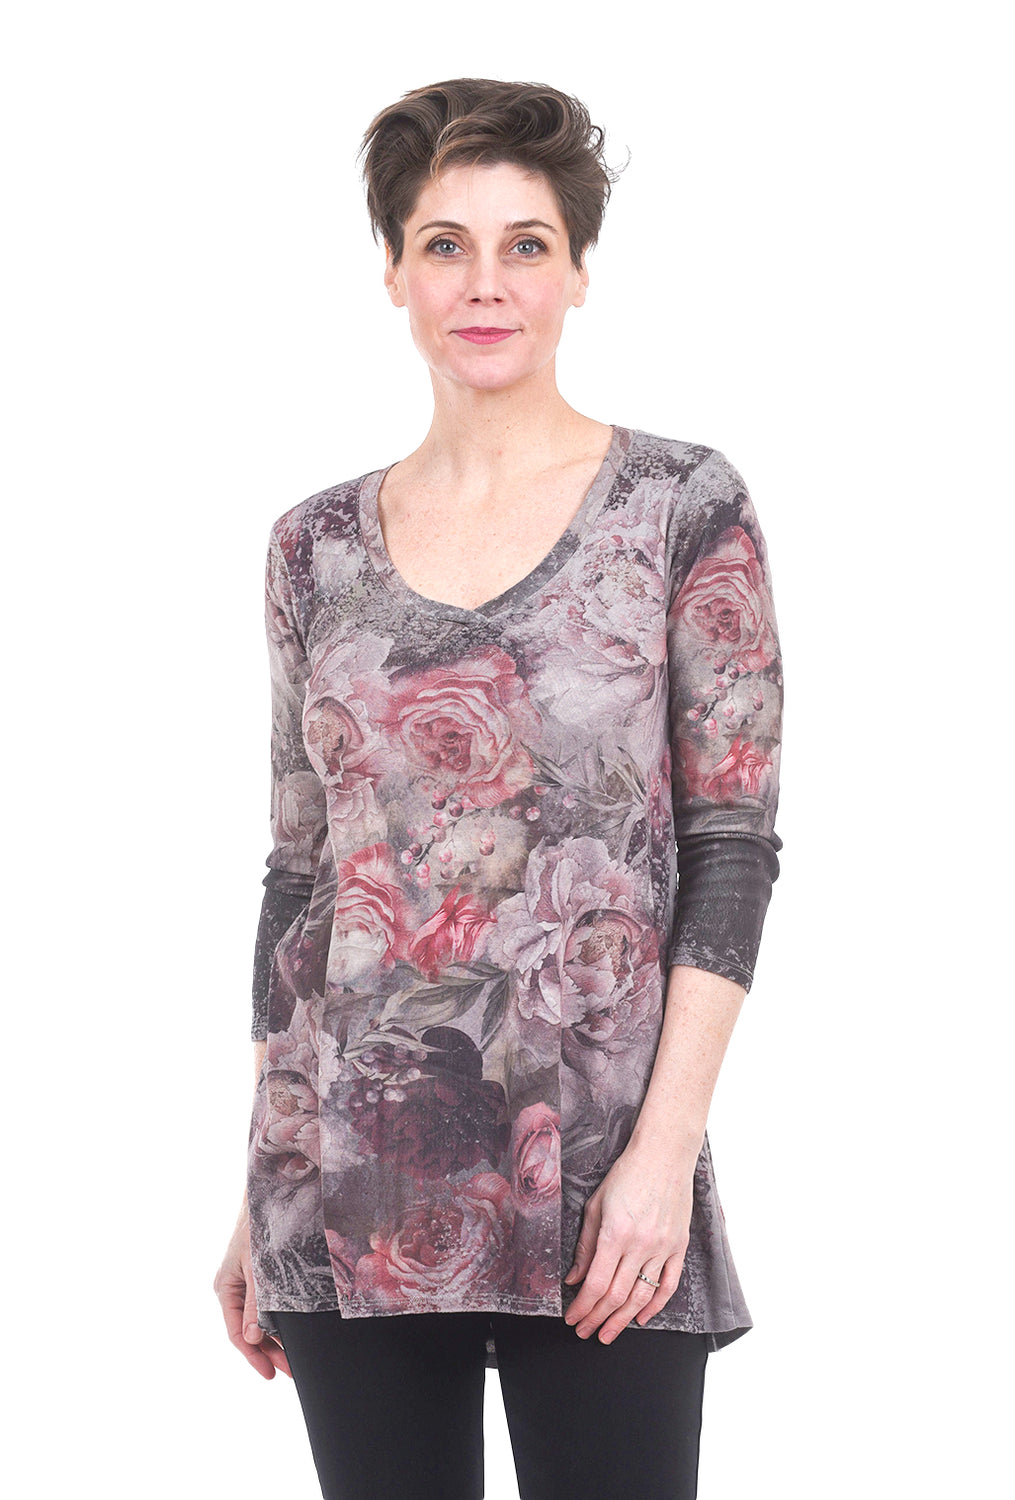 M. Rena V-Neck Sublimation Print Top, Roses Gray